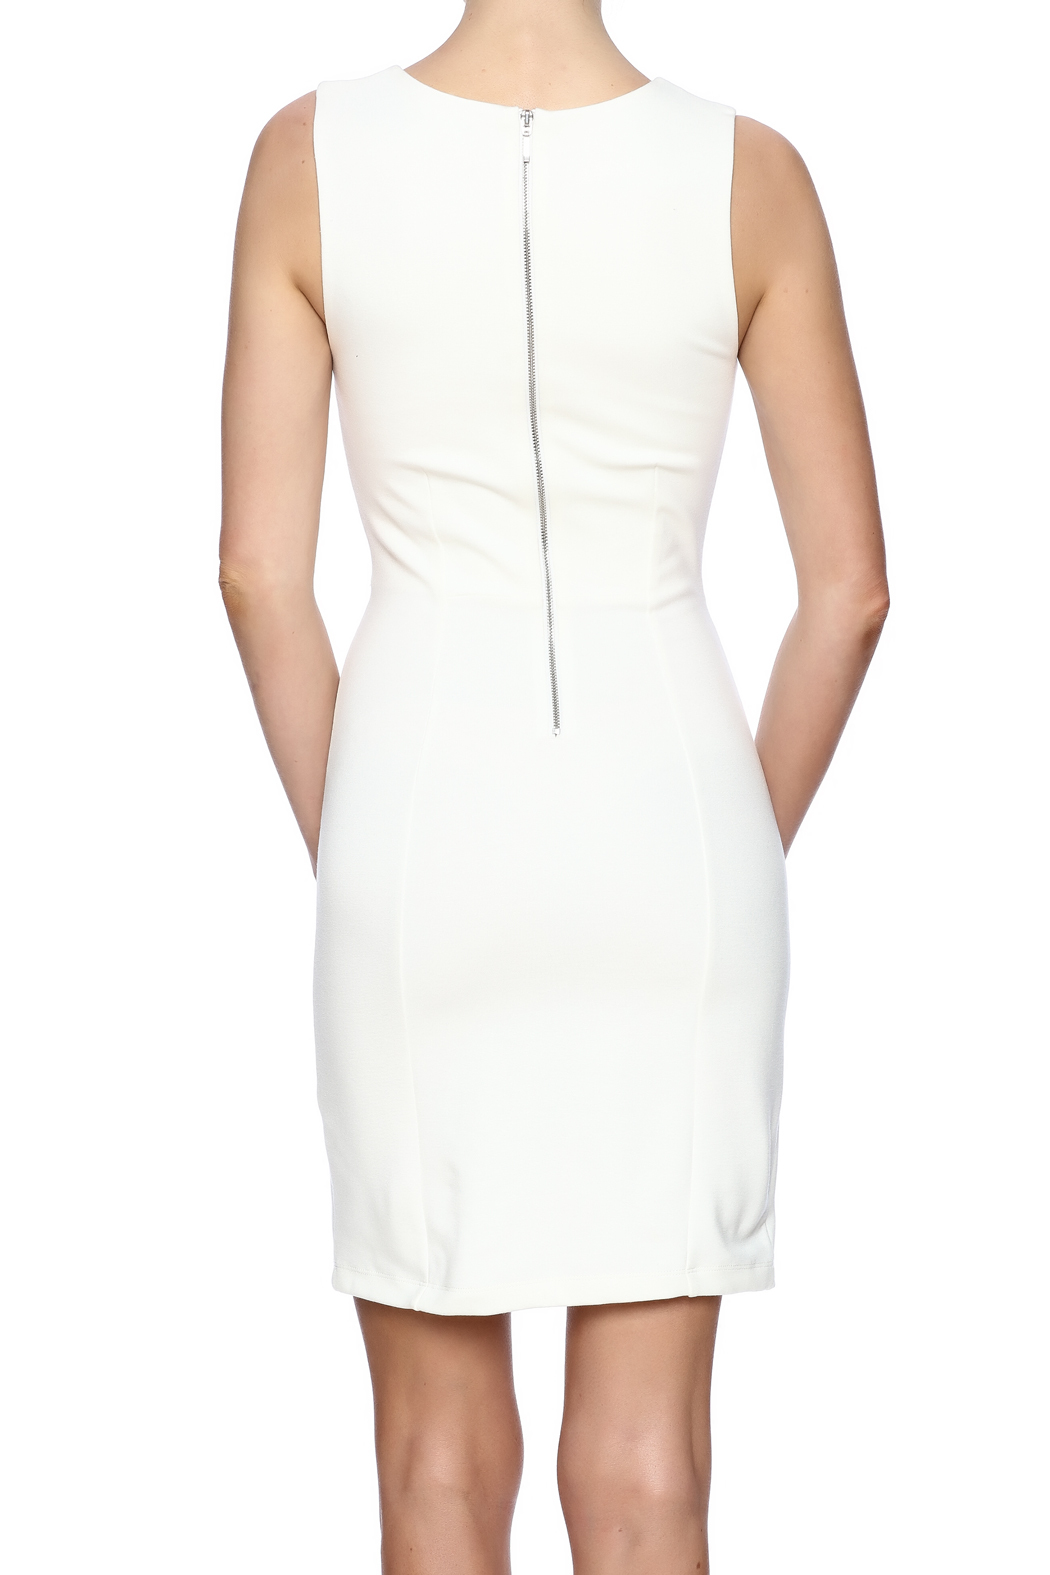 French Connection Sleeveless Dress - Back Cropped Image